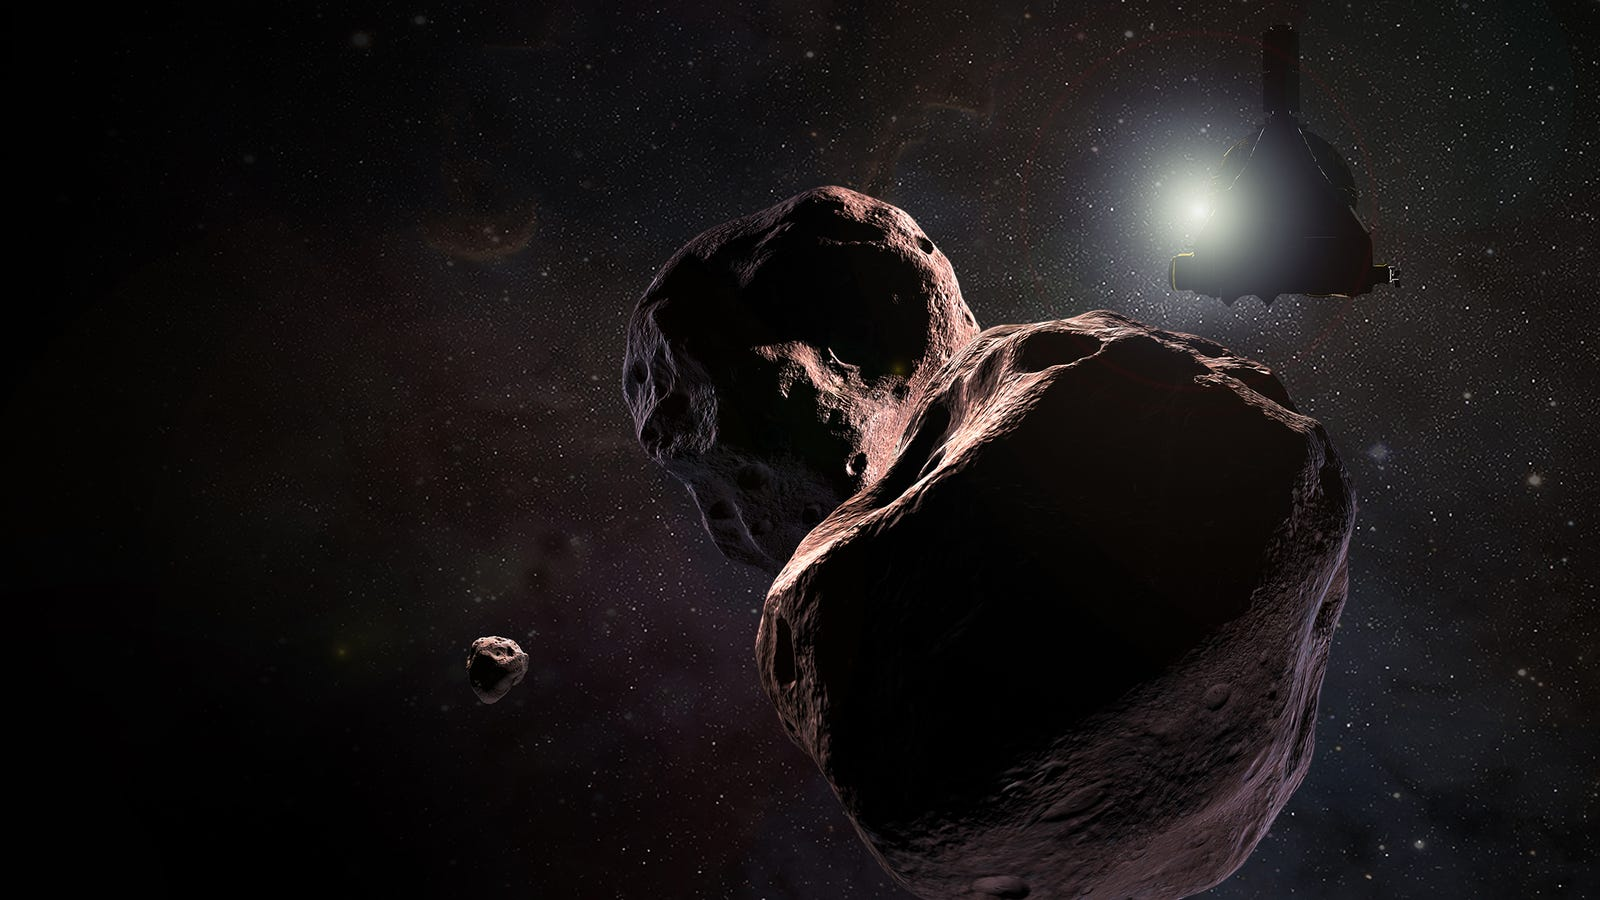 Hell Yes, NASA's New Horizons Will Buzz Right Past Ultima Thule on New Year's Day